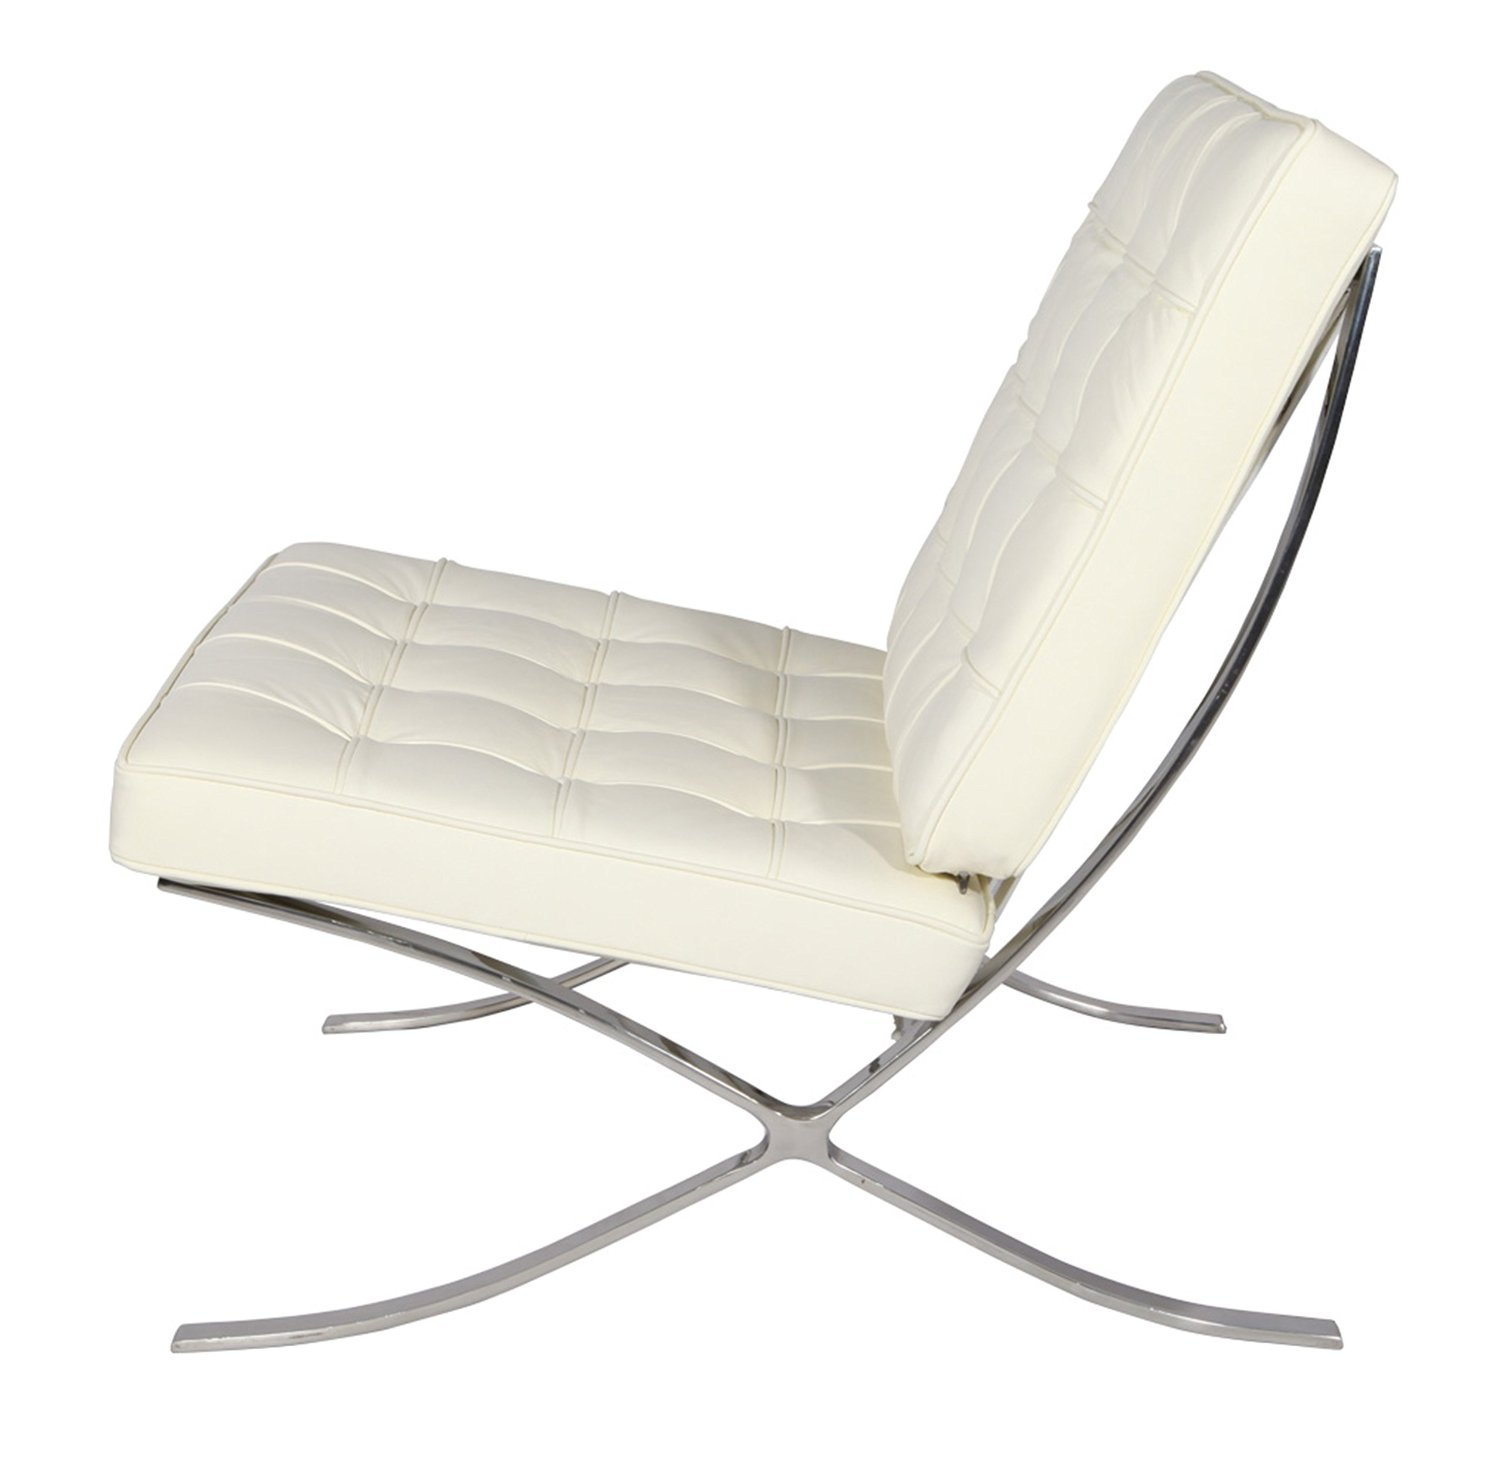 Amazon.com: Modern Souces - Pavilion Barcelona Style Chair ...